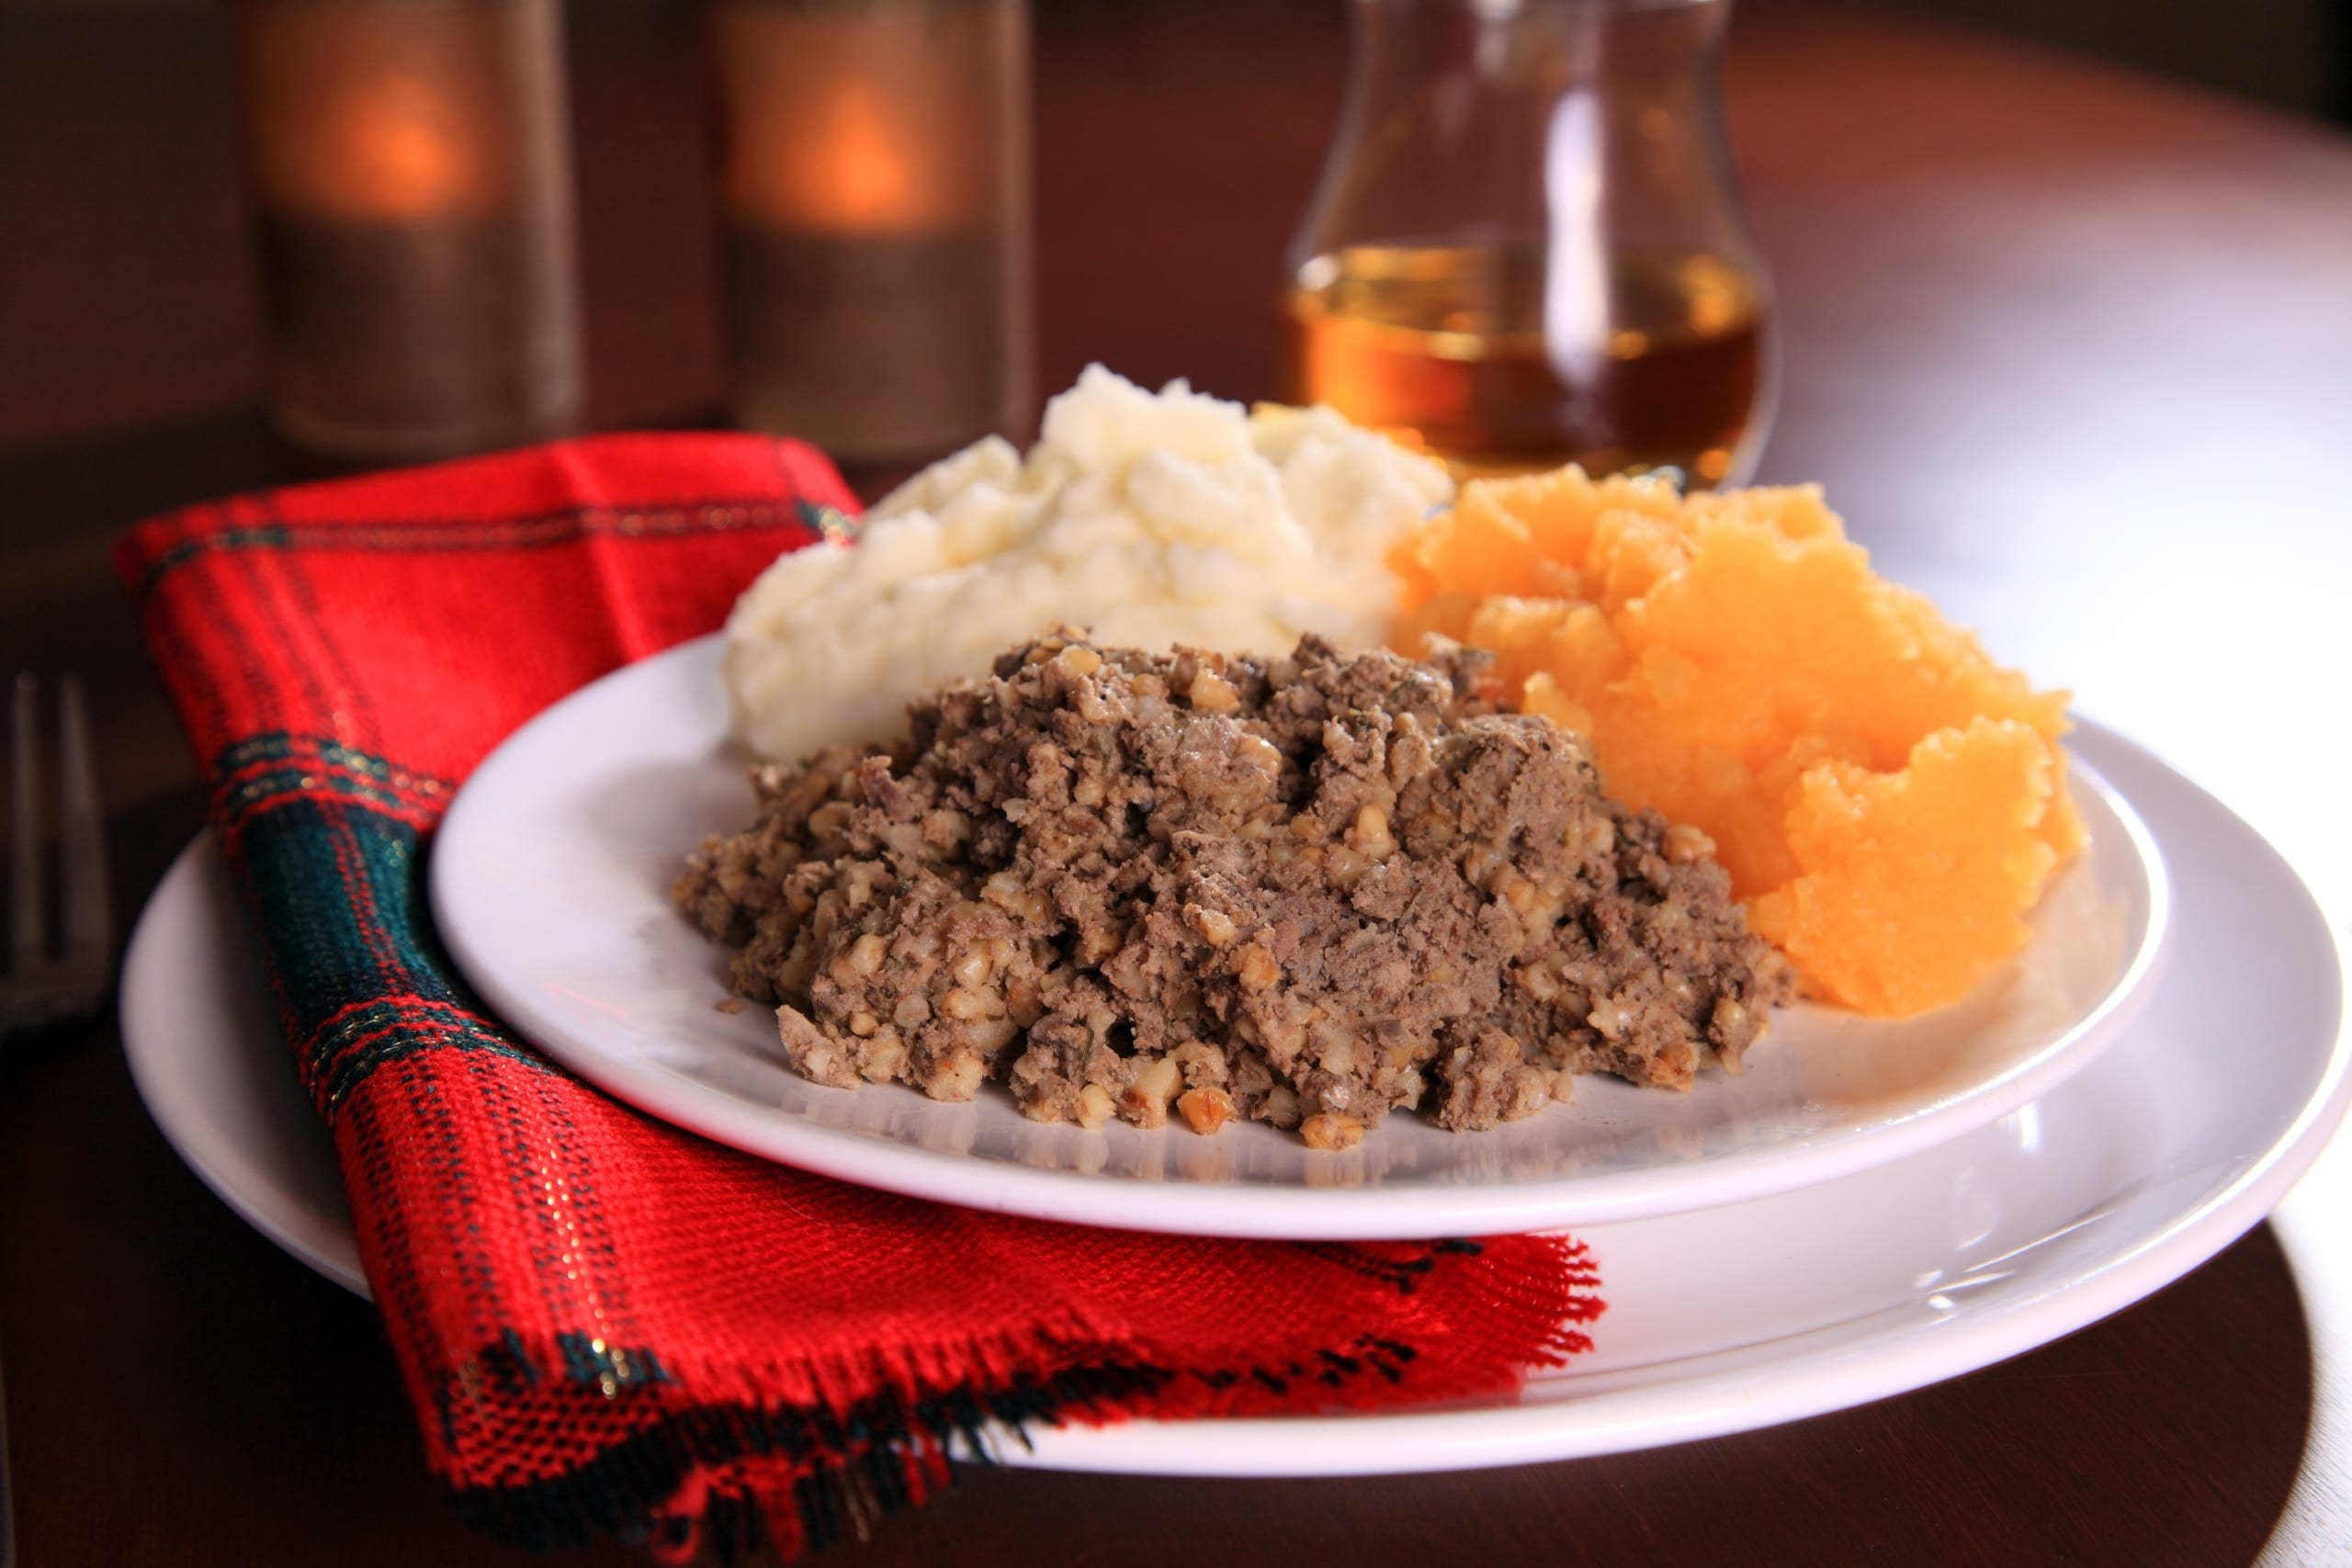 A Burns Night supper of haggis and tatties on a plate with a tartan napkin.